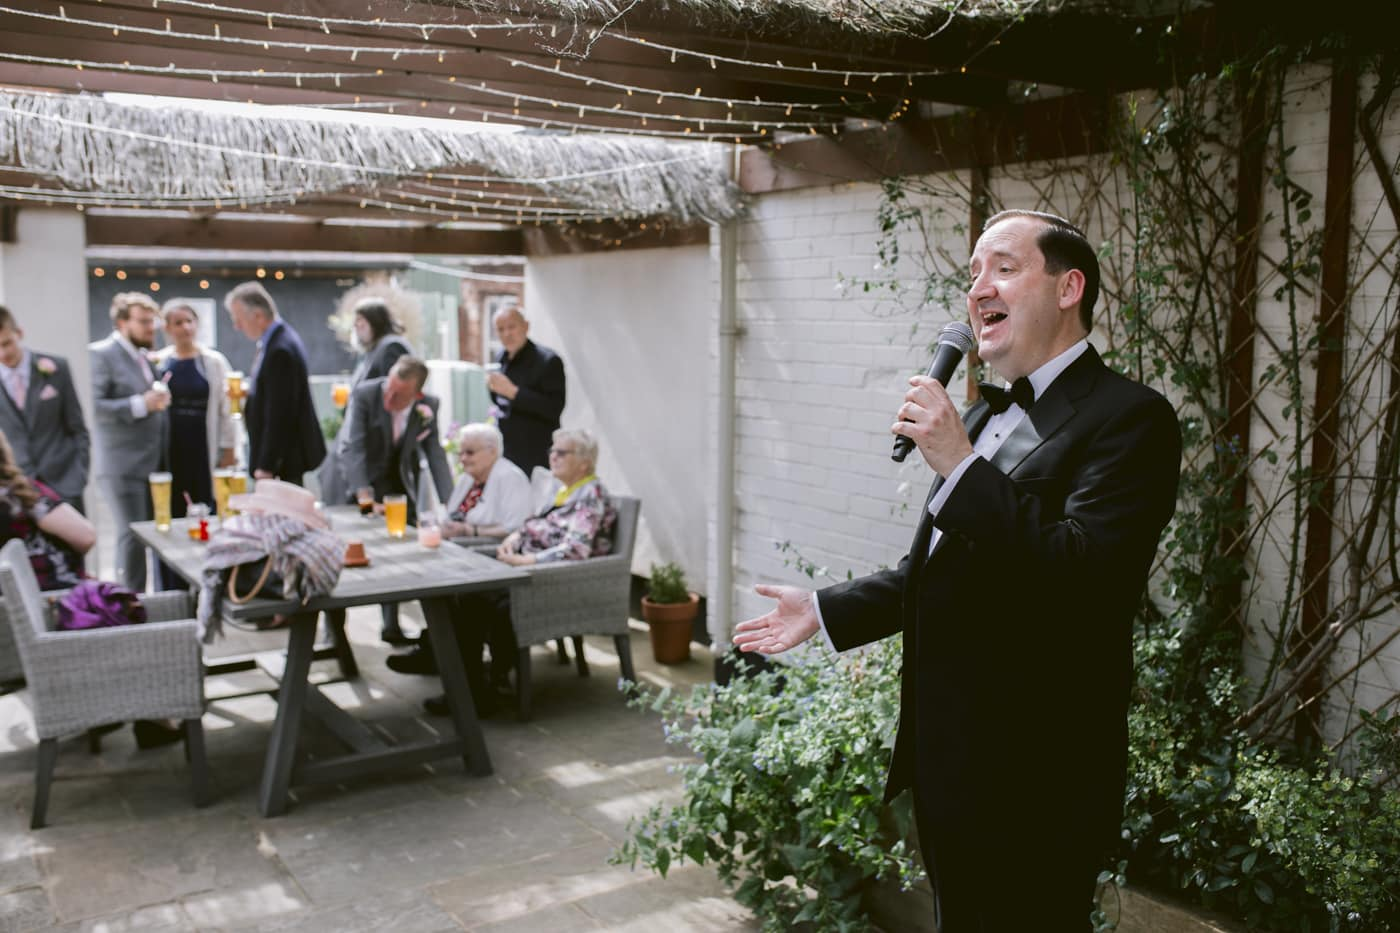 Man in Suit Singing with Guests in the Background Photography